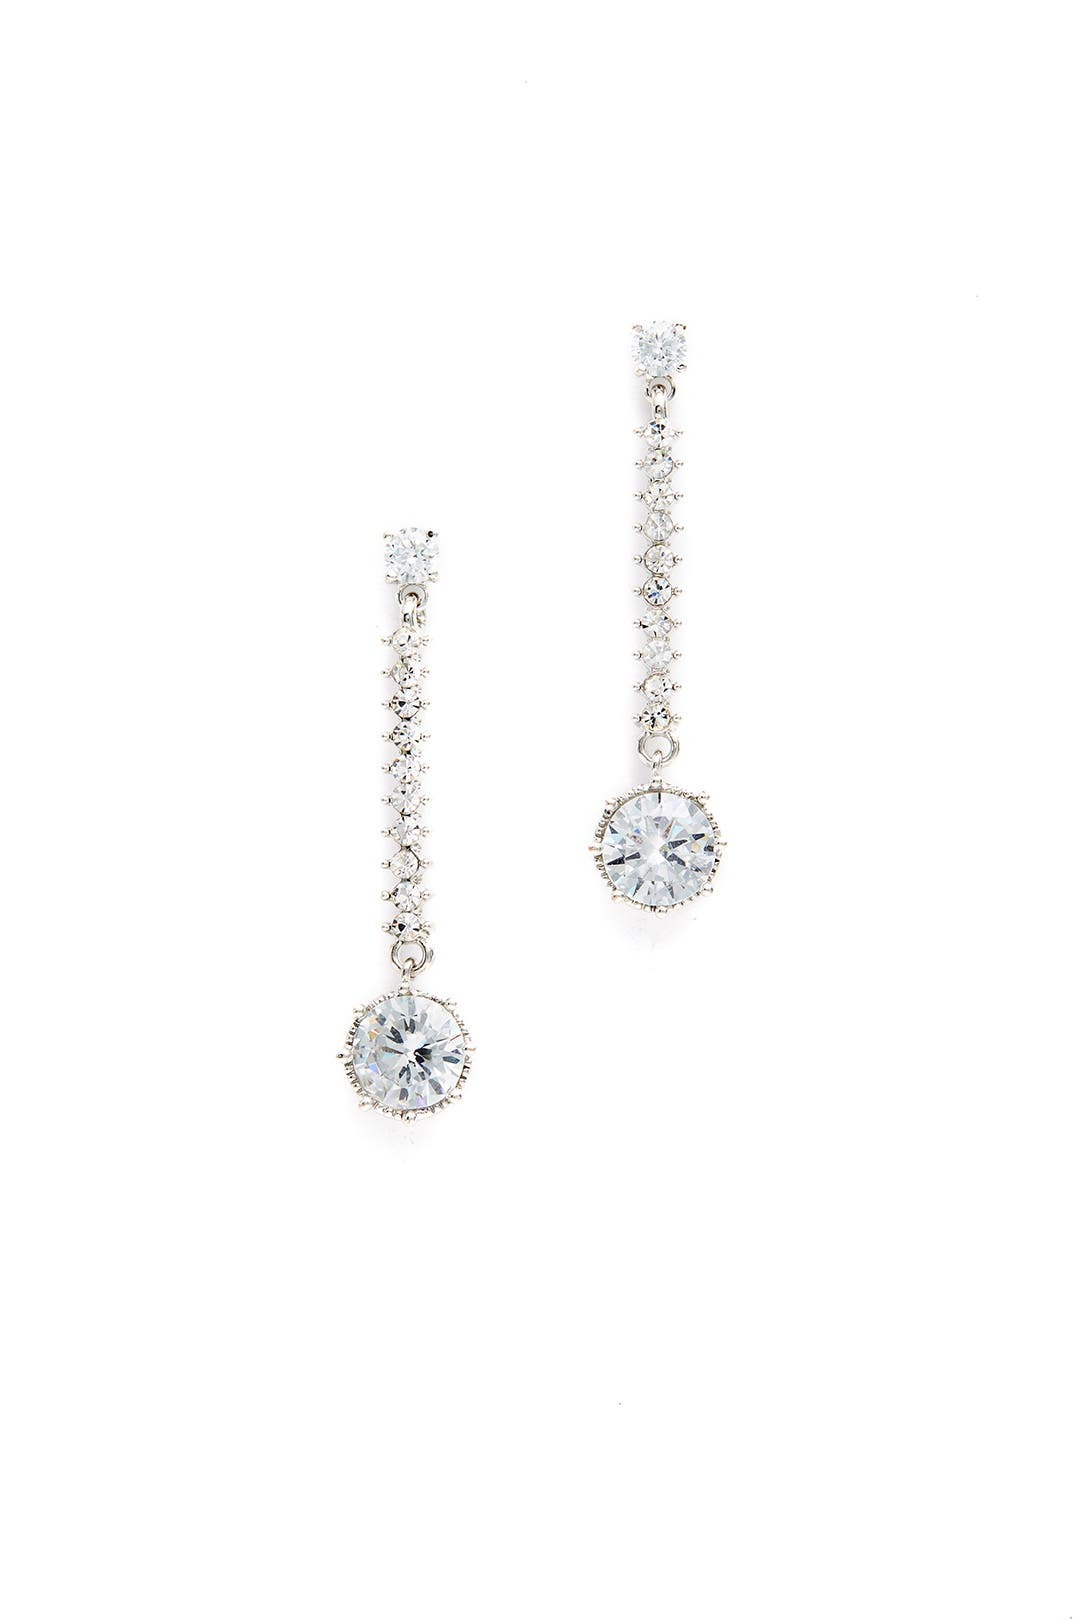 Classic Sparkle Crystal Earrings By Slate & Willow Accessories For $5  Rent  The Runway